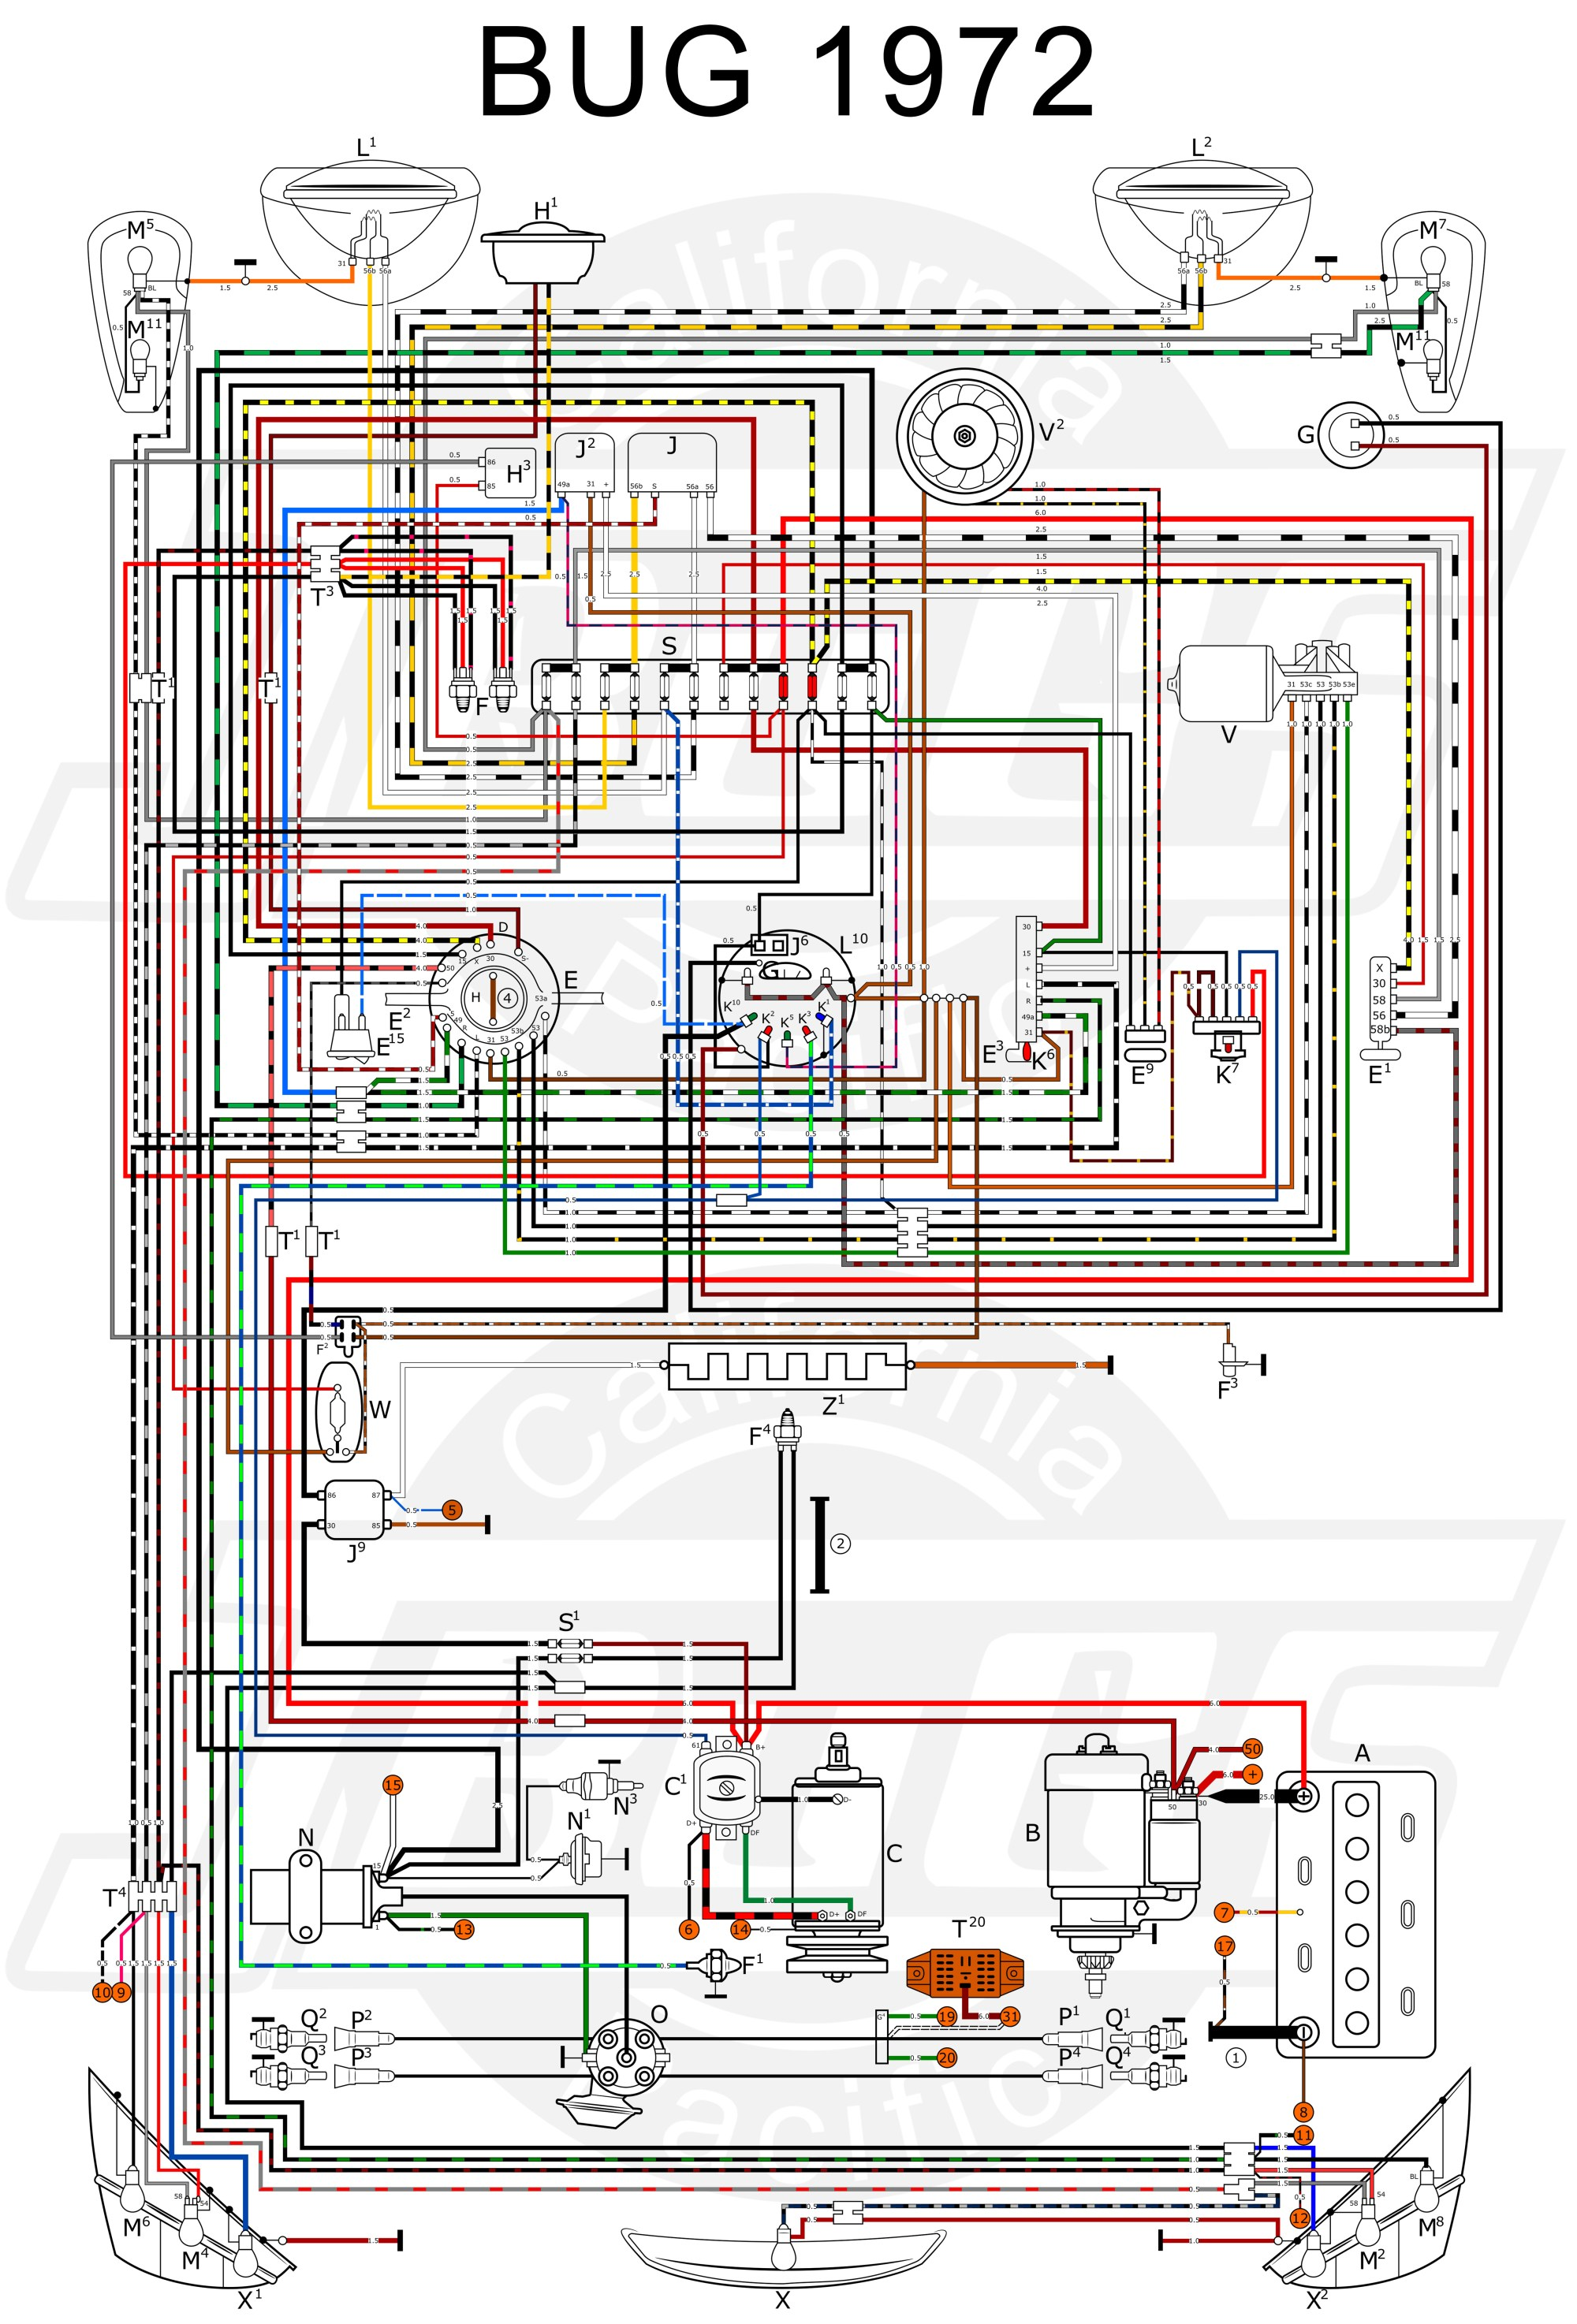 hight resolution of 77 vw van wiring diagram free download schema diagram database 77 vw van wiring diagram schema